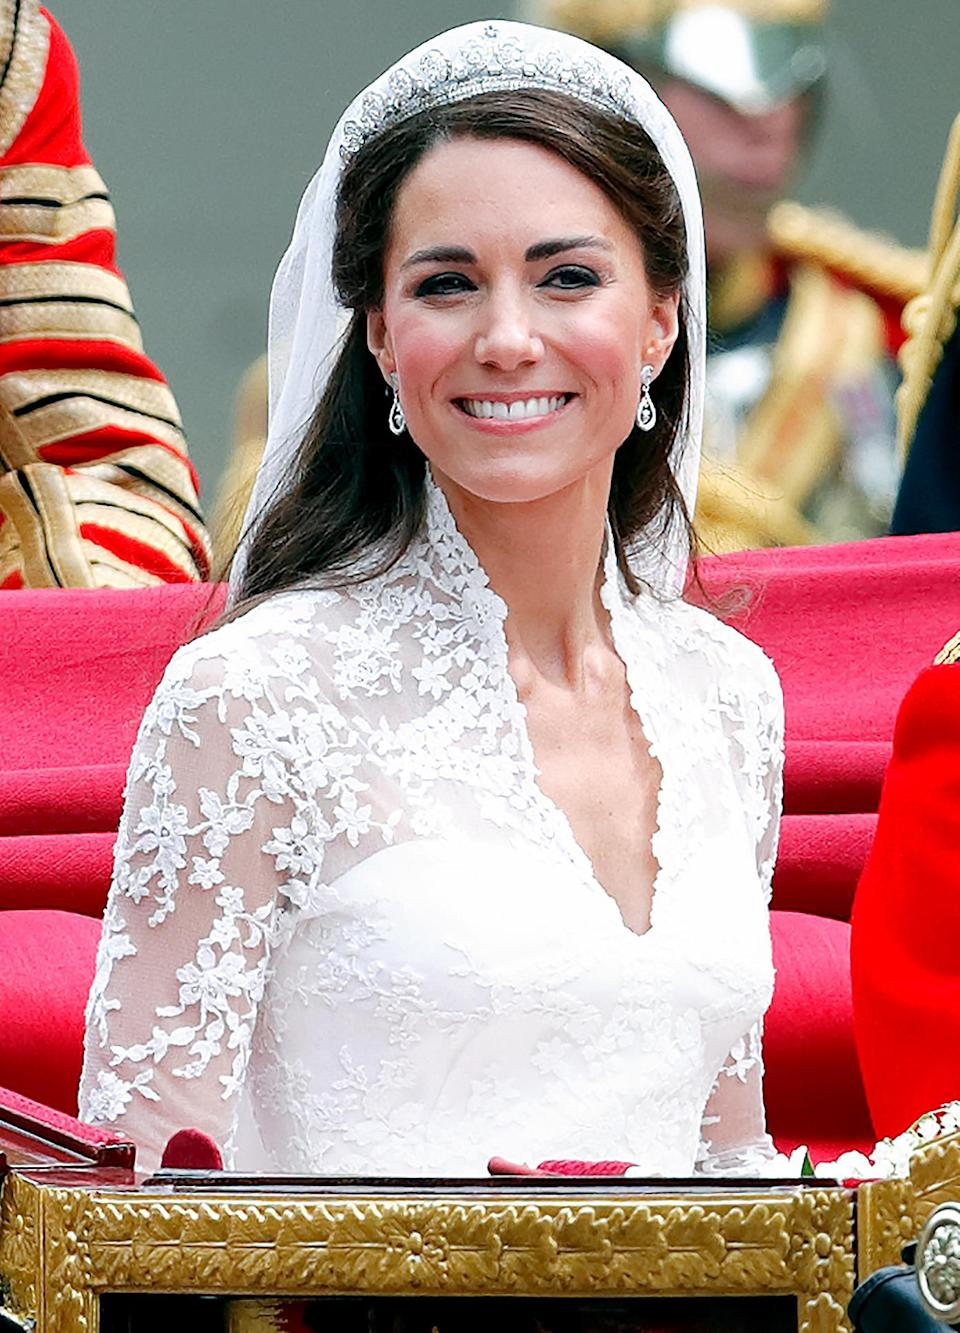 <p>Kate's wedding headpiece has been worn by many royal women, including Princess Anne and the Queen Mother. However, the Queen has never worn the Cartier Halo tiara publicly.</p>